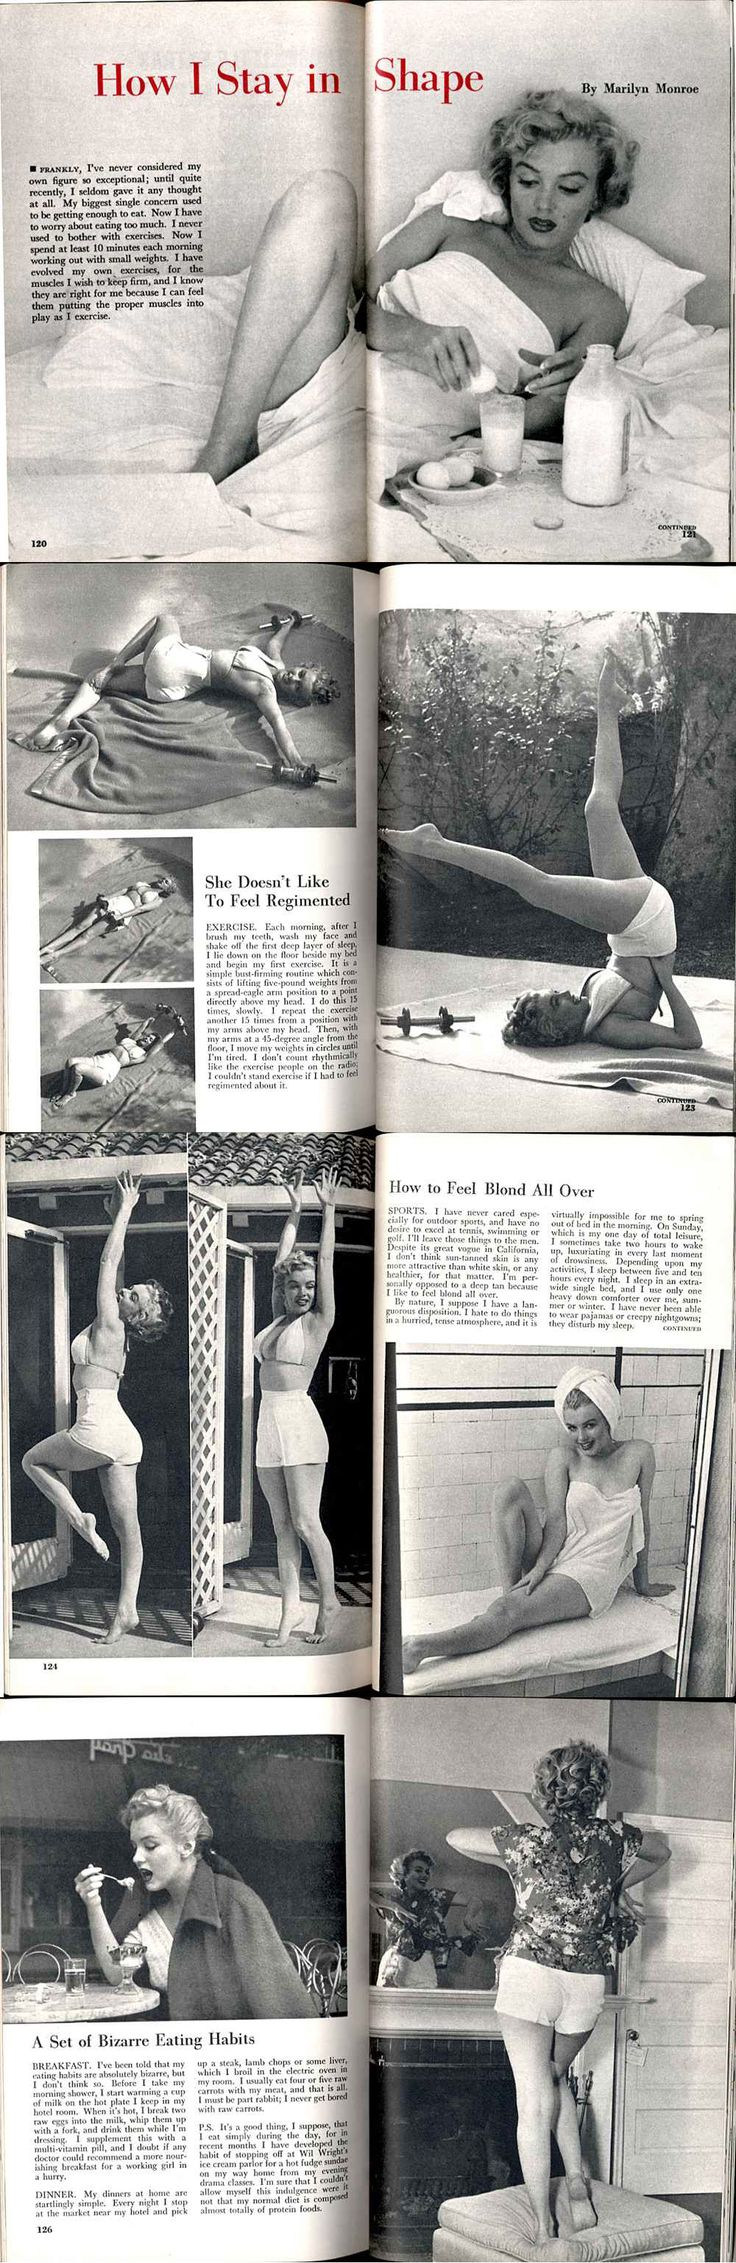 "Hugely adorable: ""How I Stay in Shape"" by Marilyn Monroe, appeared in the September 1952 issue of ""Pageant"" magazine. These images can be found at http://glamournet.com/legends/Marilyn/monthly/shape1.html"